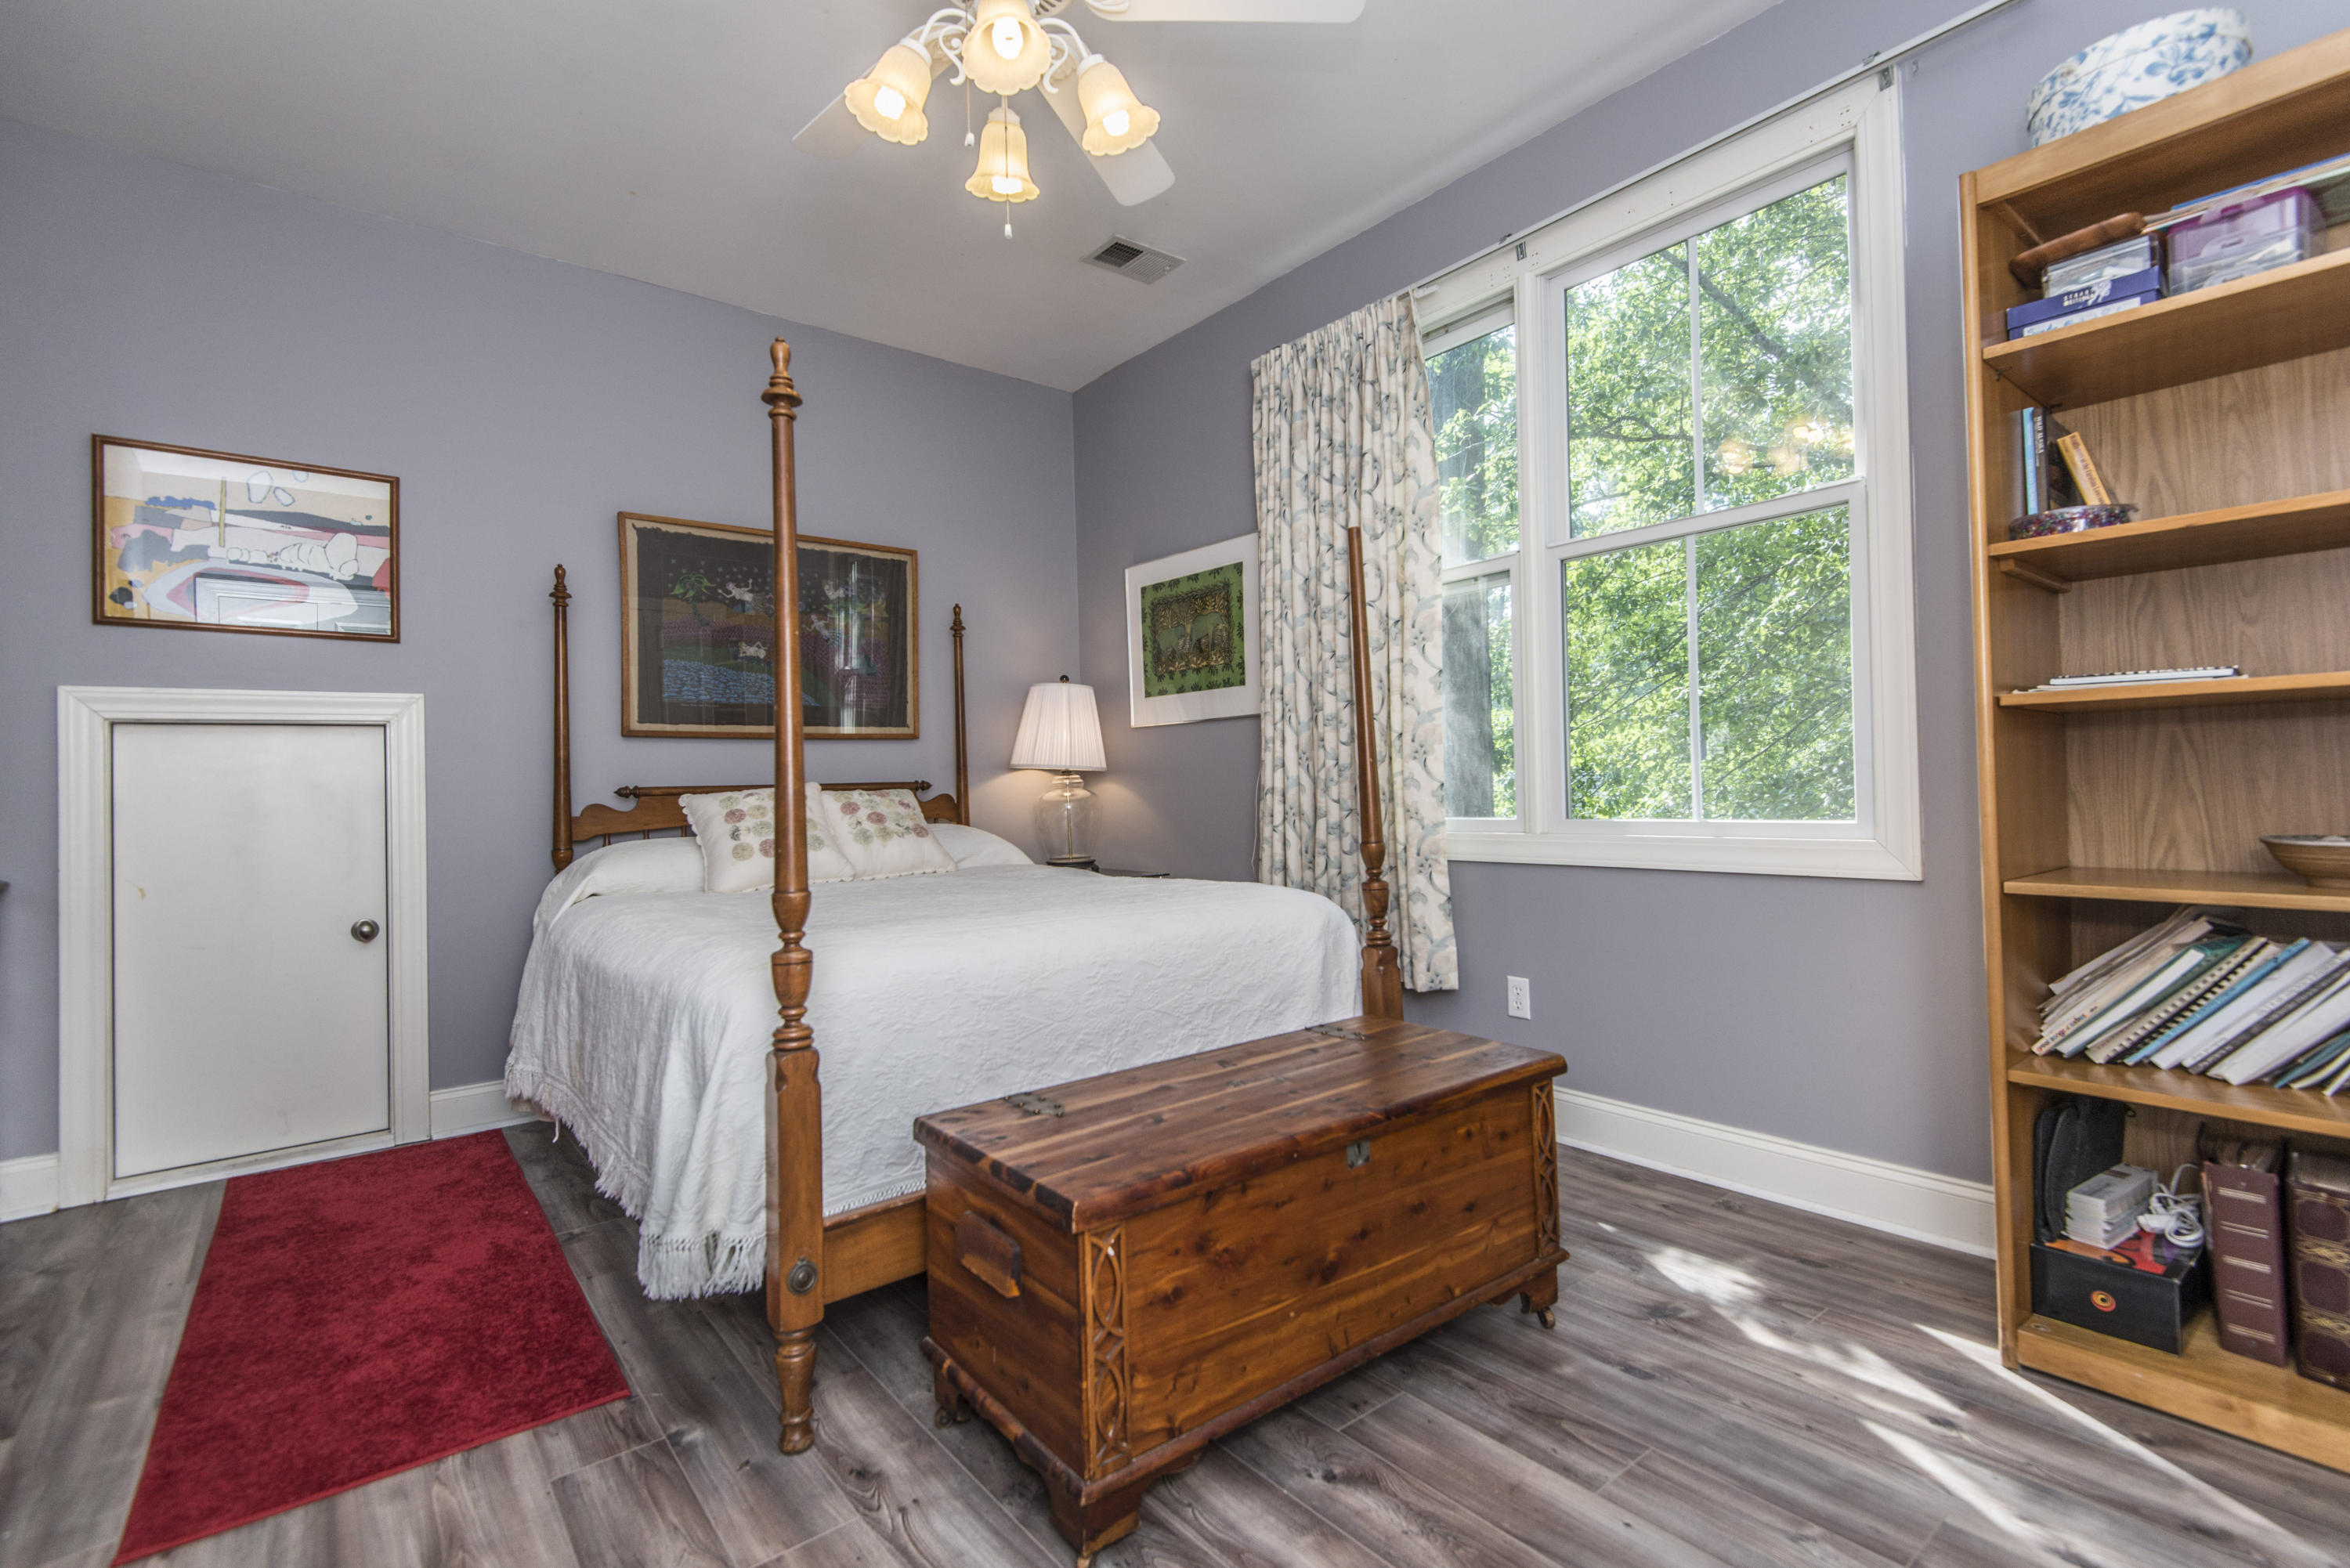 The Villages In St Johns Woods Homes For Sale - 4087 Amy, Johns Island, SC - 45